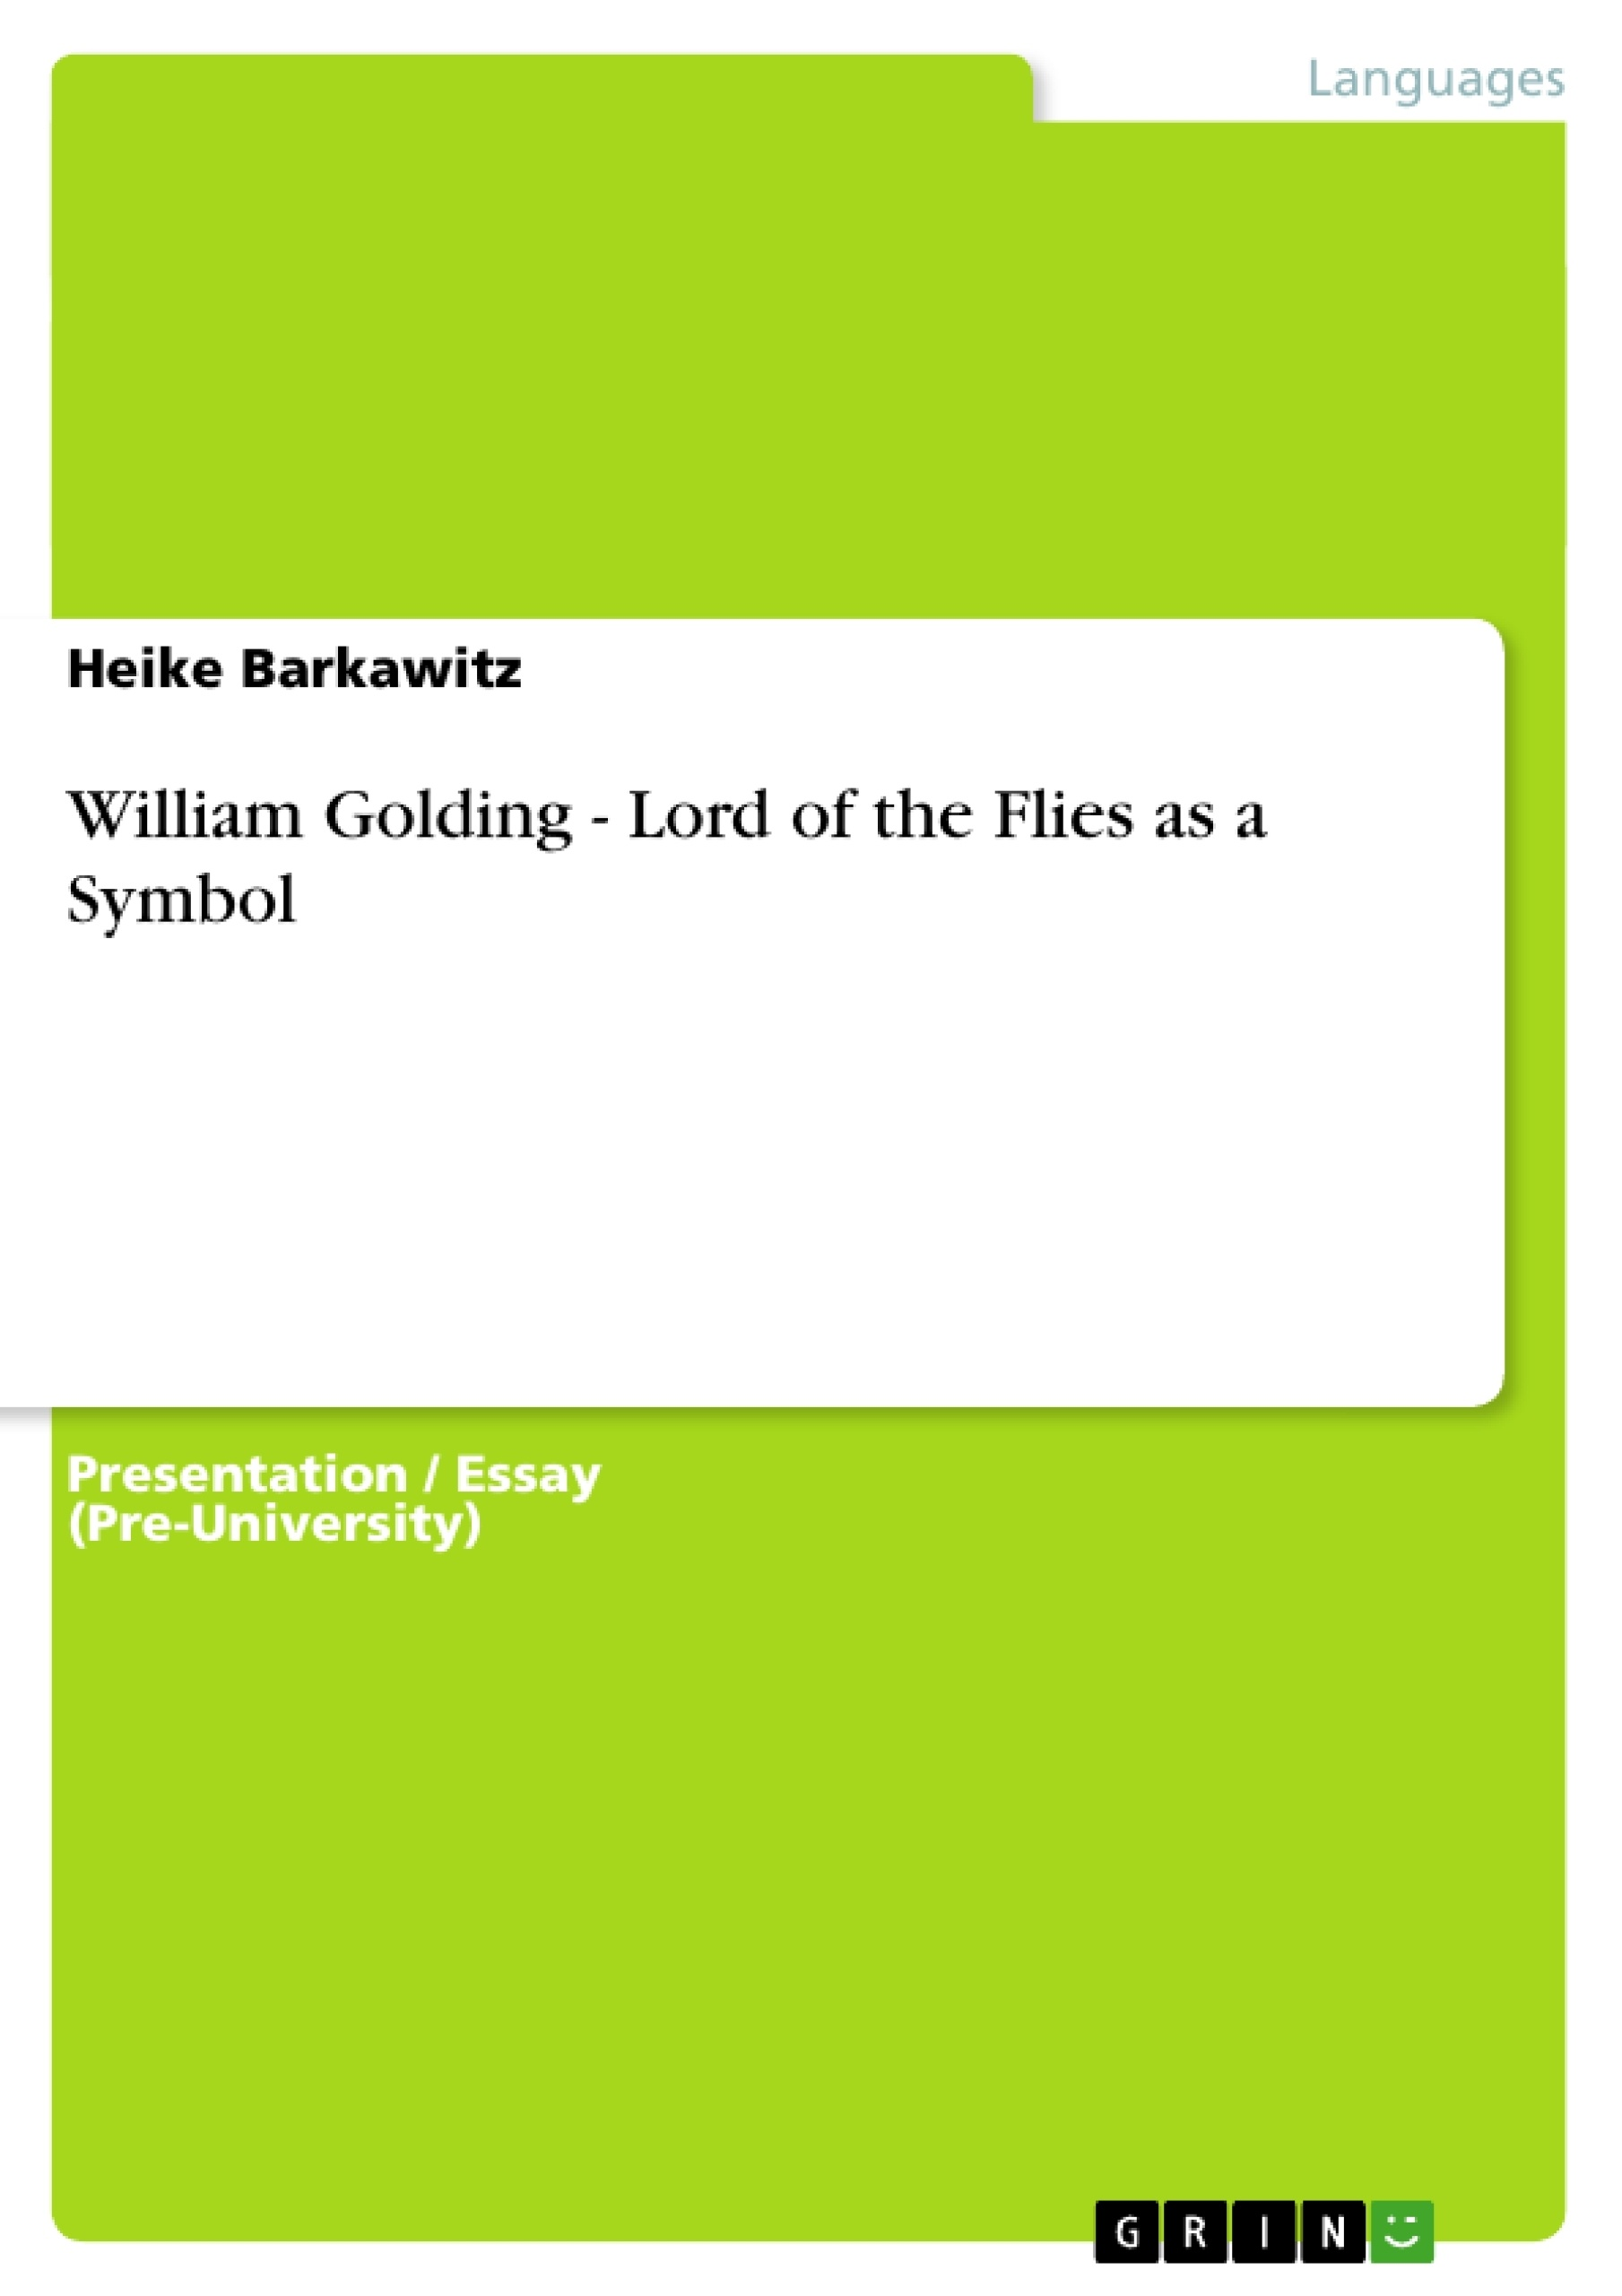 the lord of the flies essay leadership essays lord of the flies  william golding lord of the flies as a symbol publish your william golding lord of the